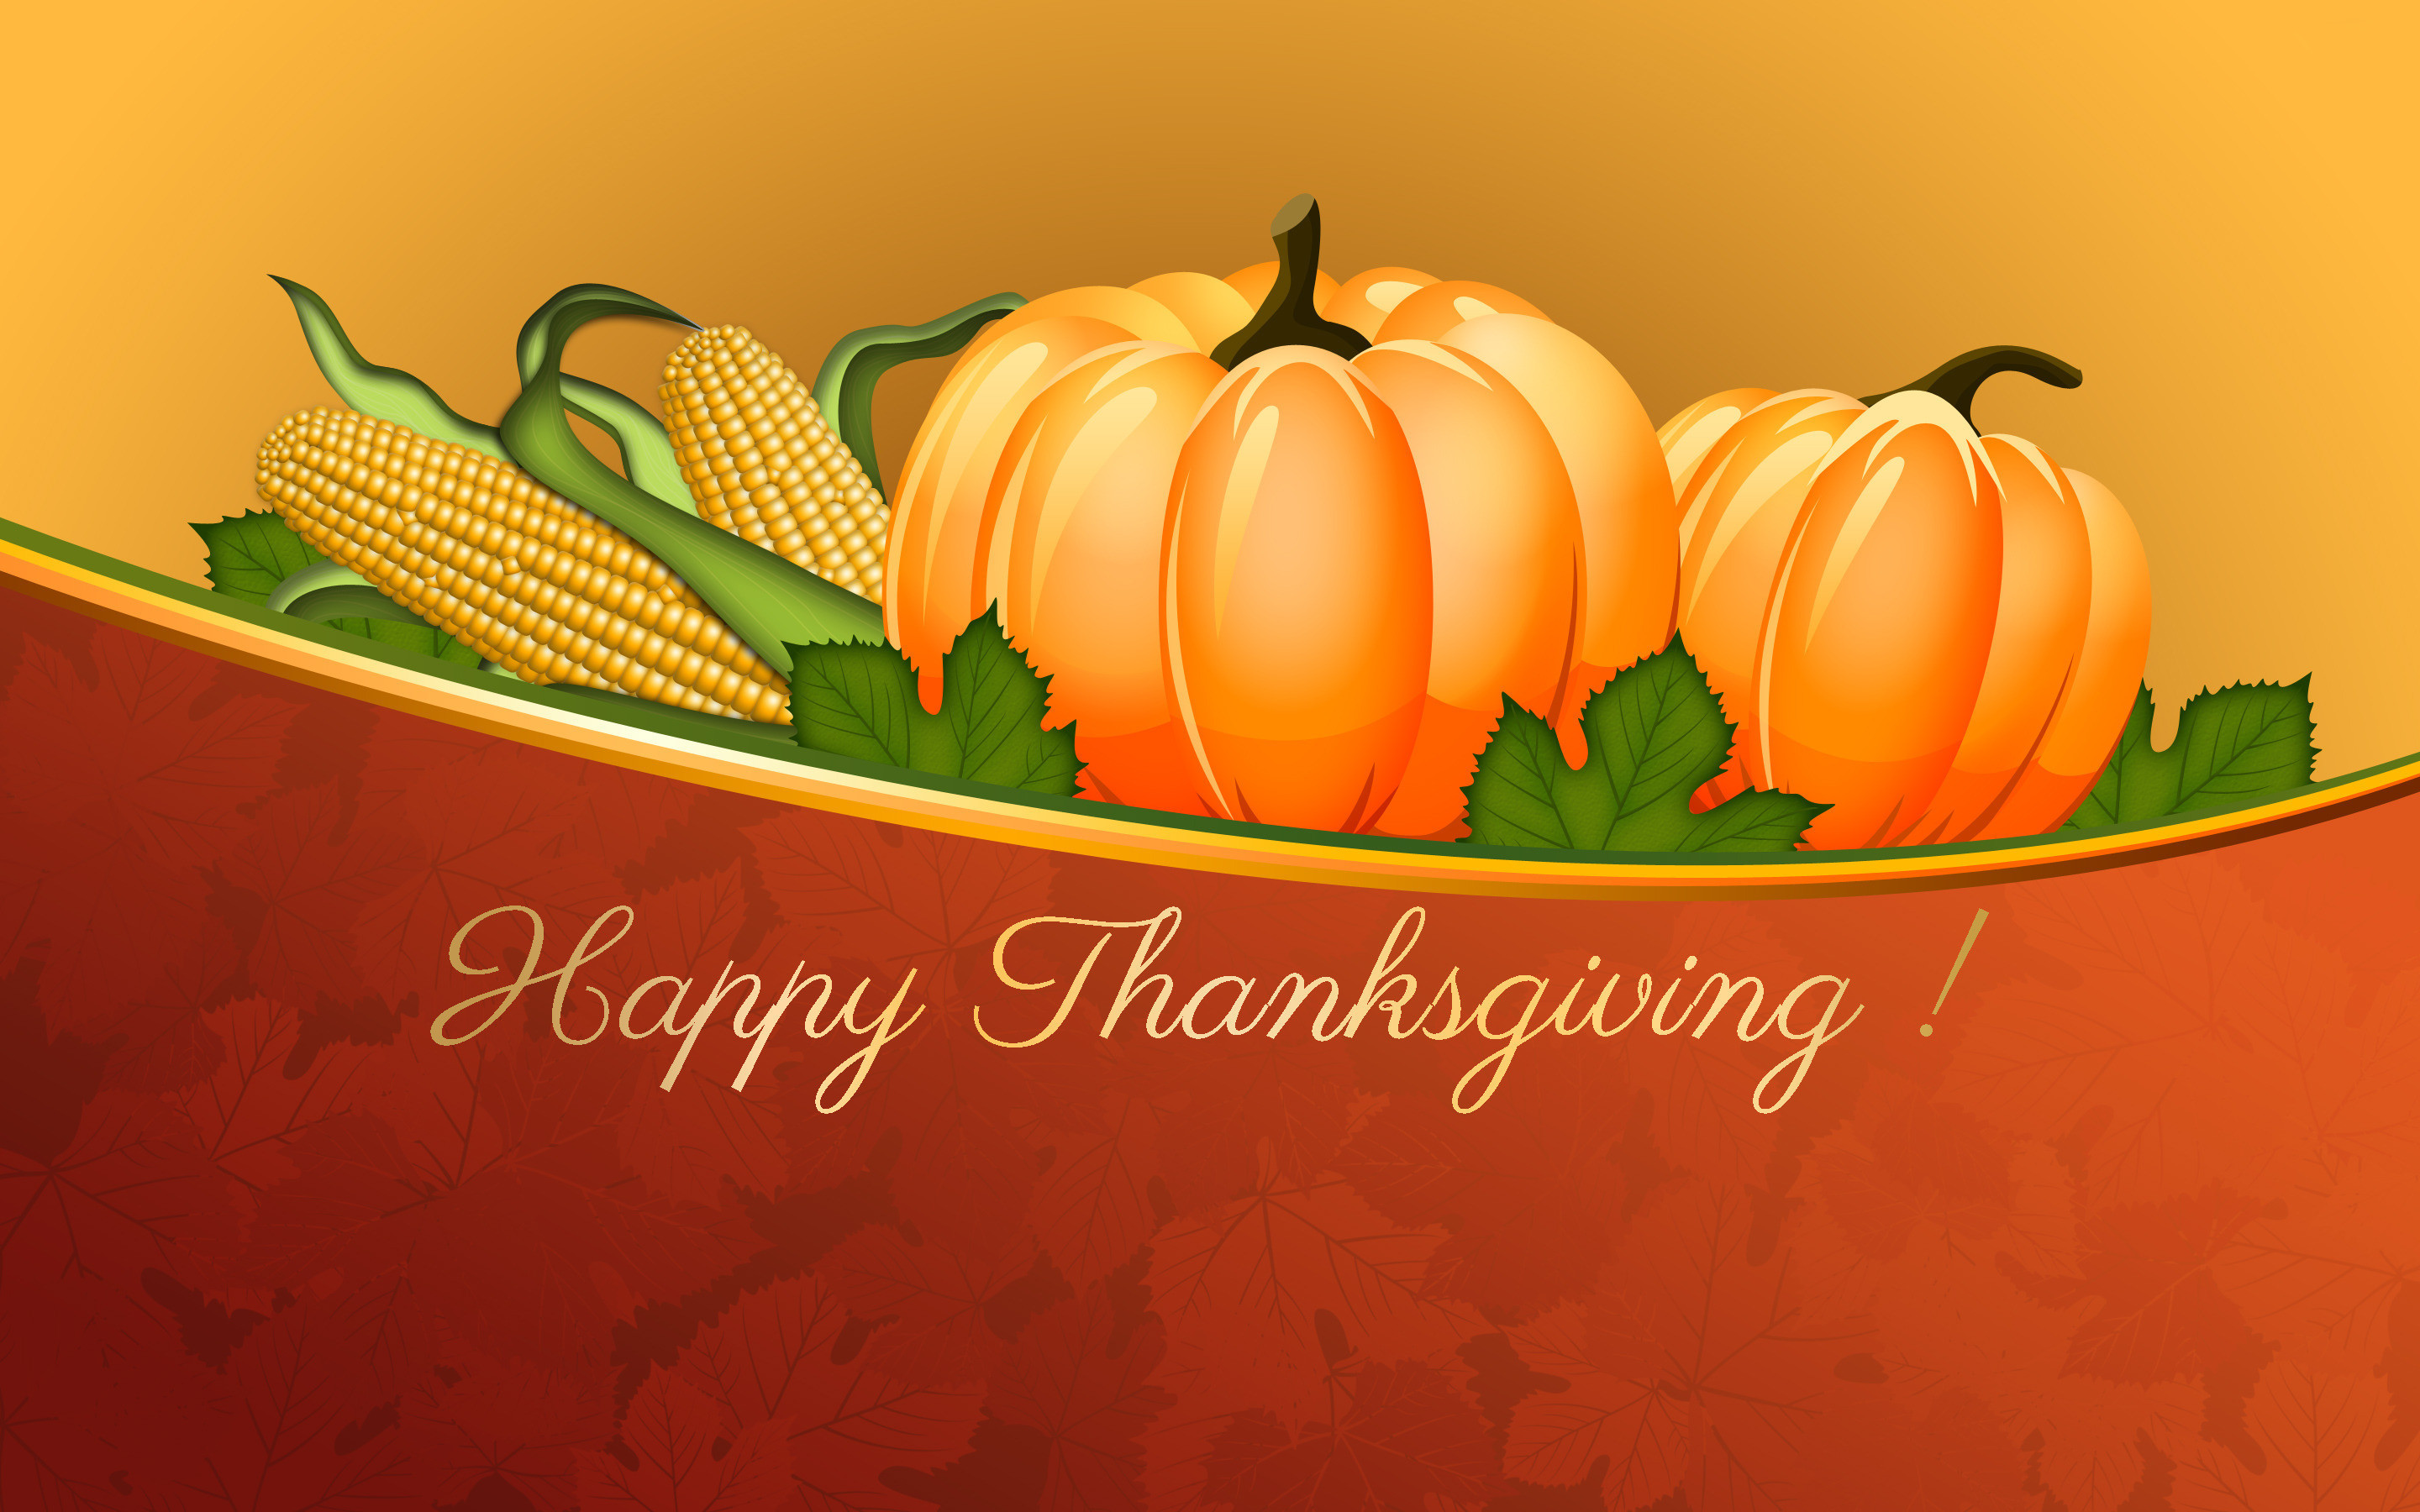 Happy thanksgiving football pictures Cached